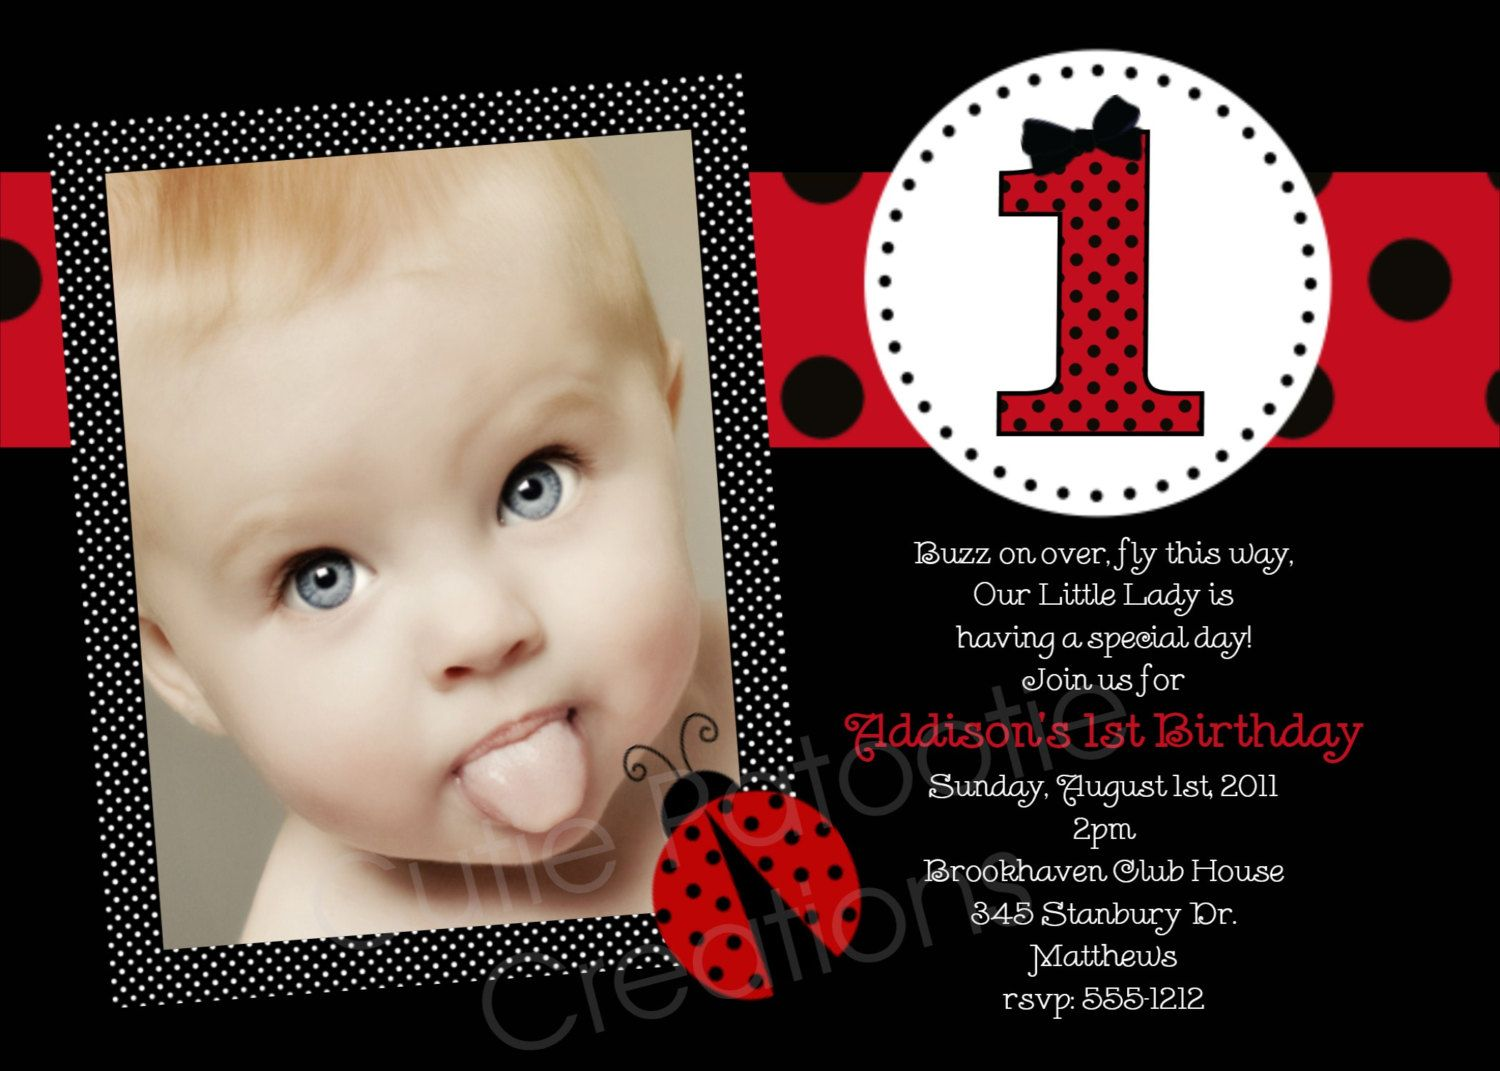 Ladybug Birthday Invitation 1st Birthday Ladybug Birthday Party